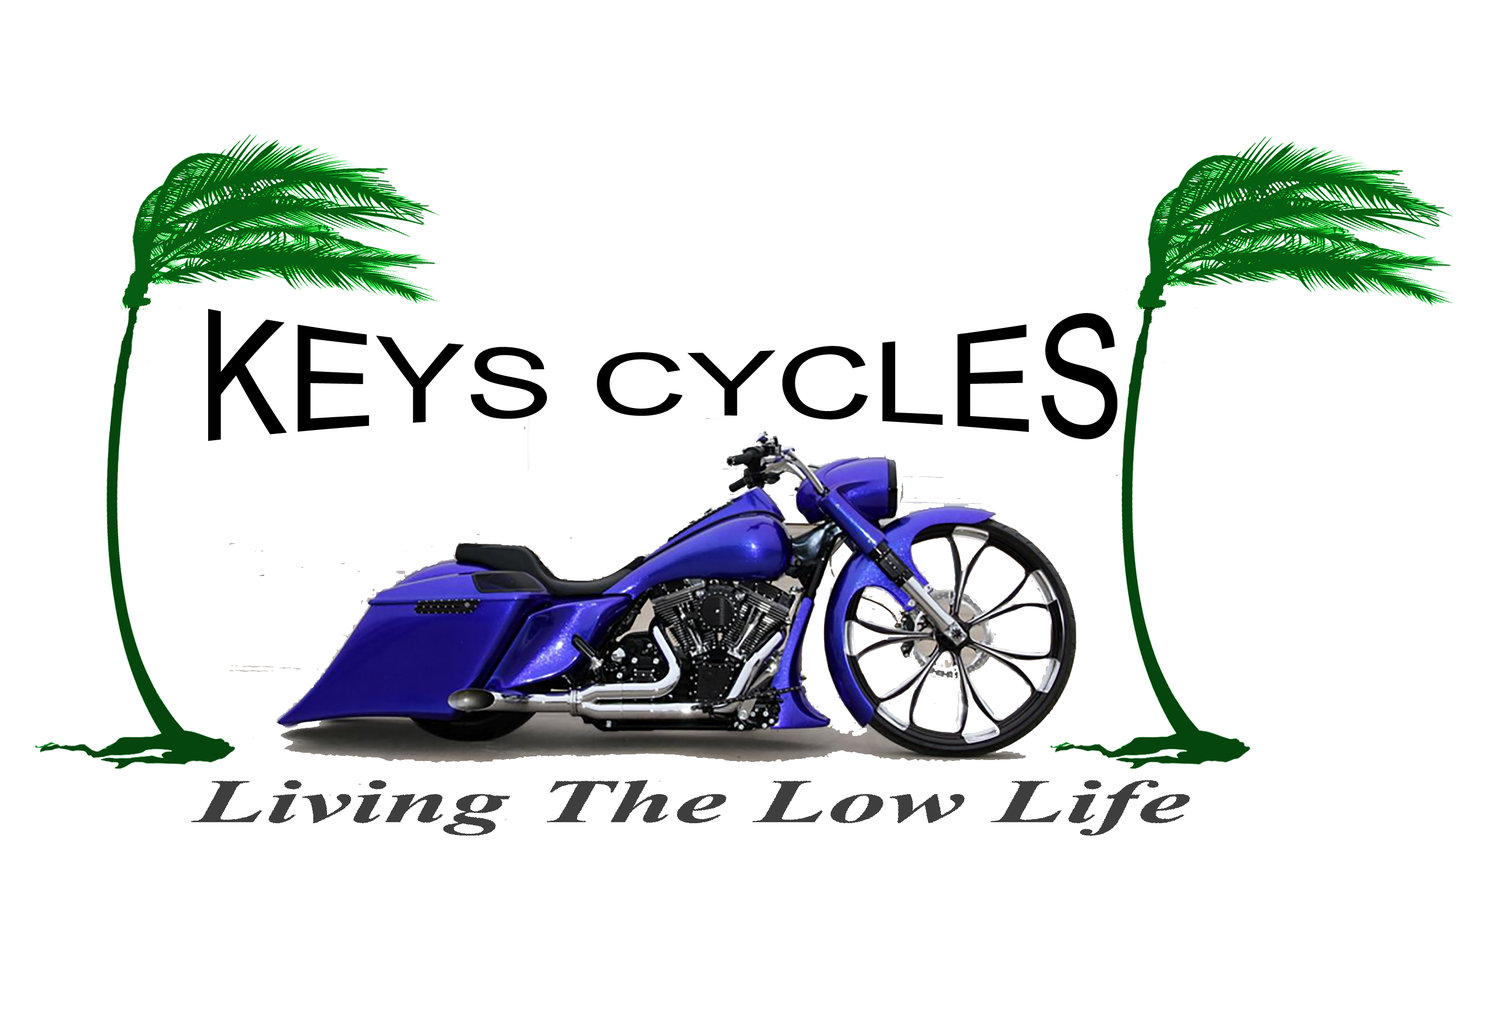 Keys Cycles